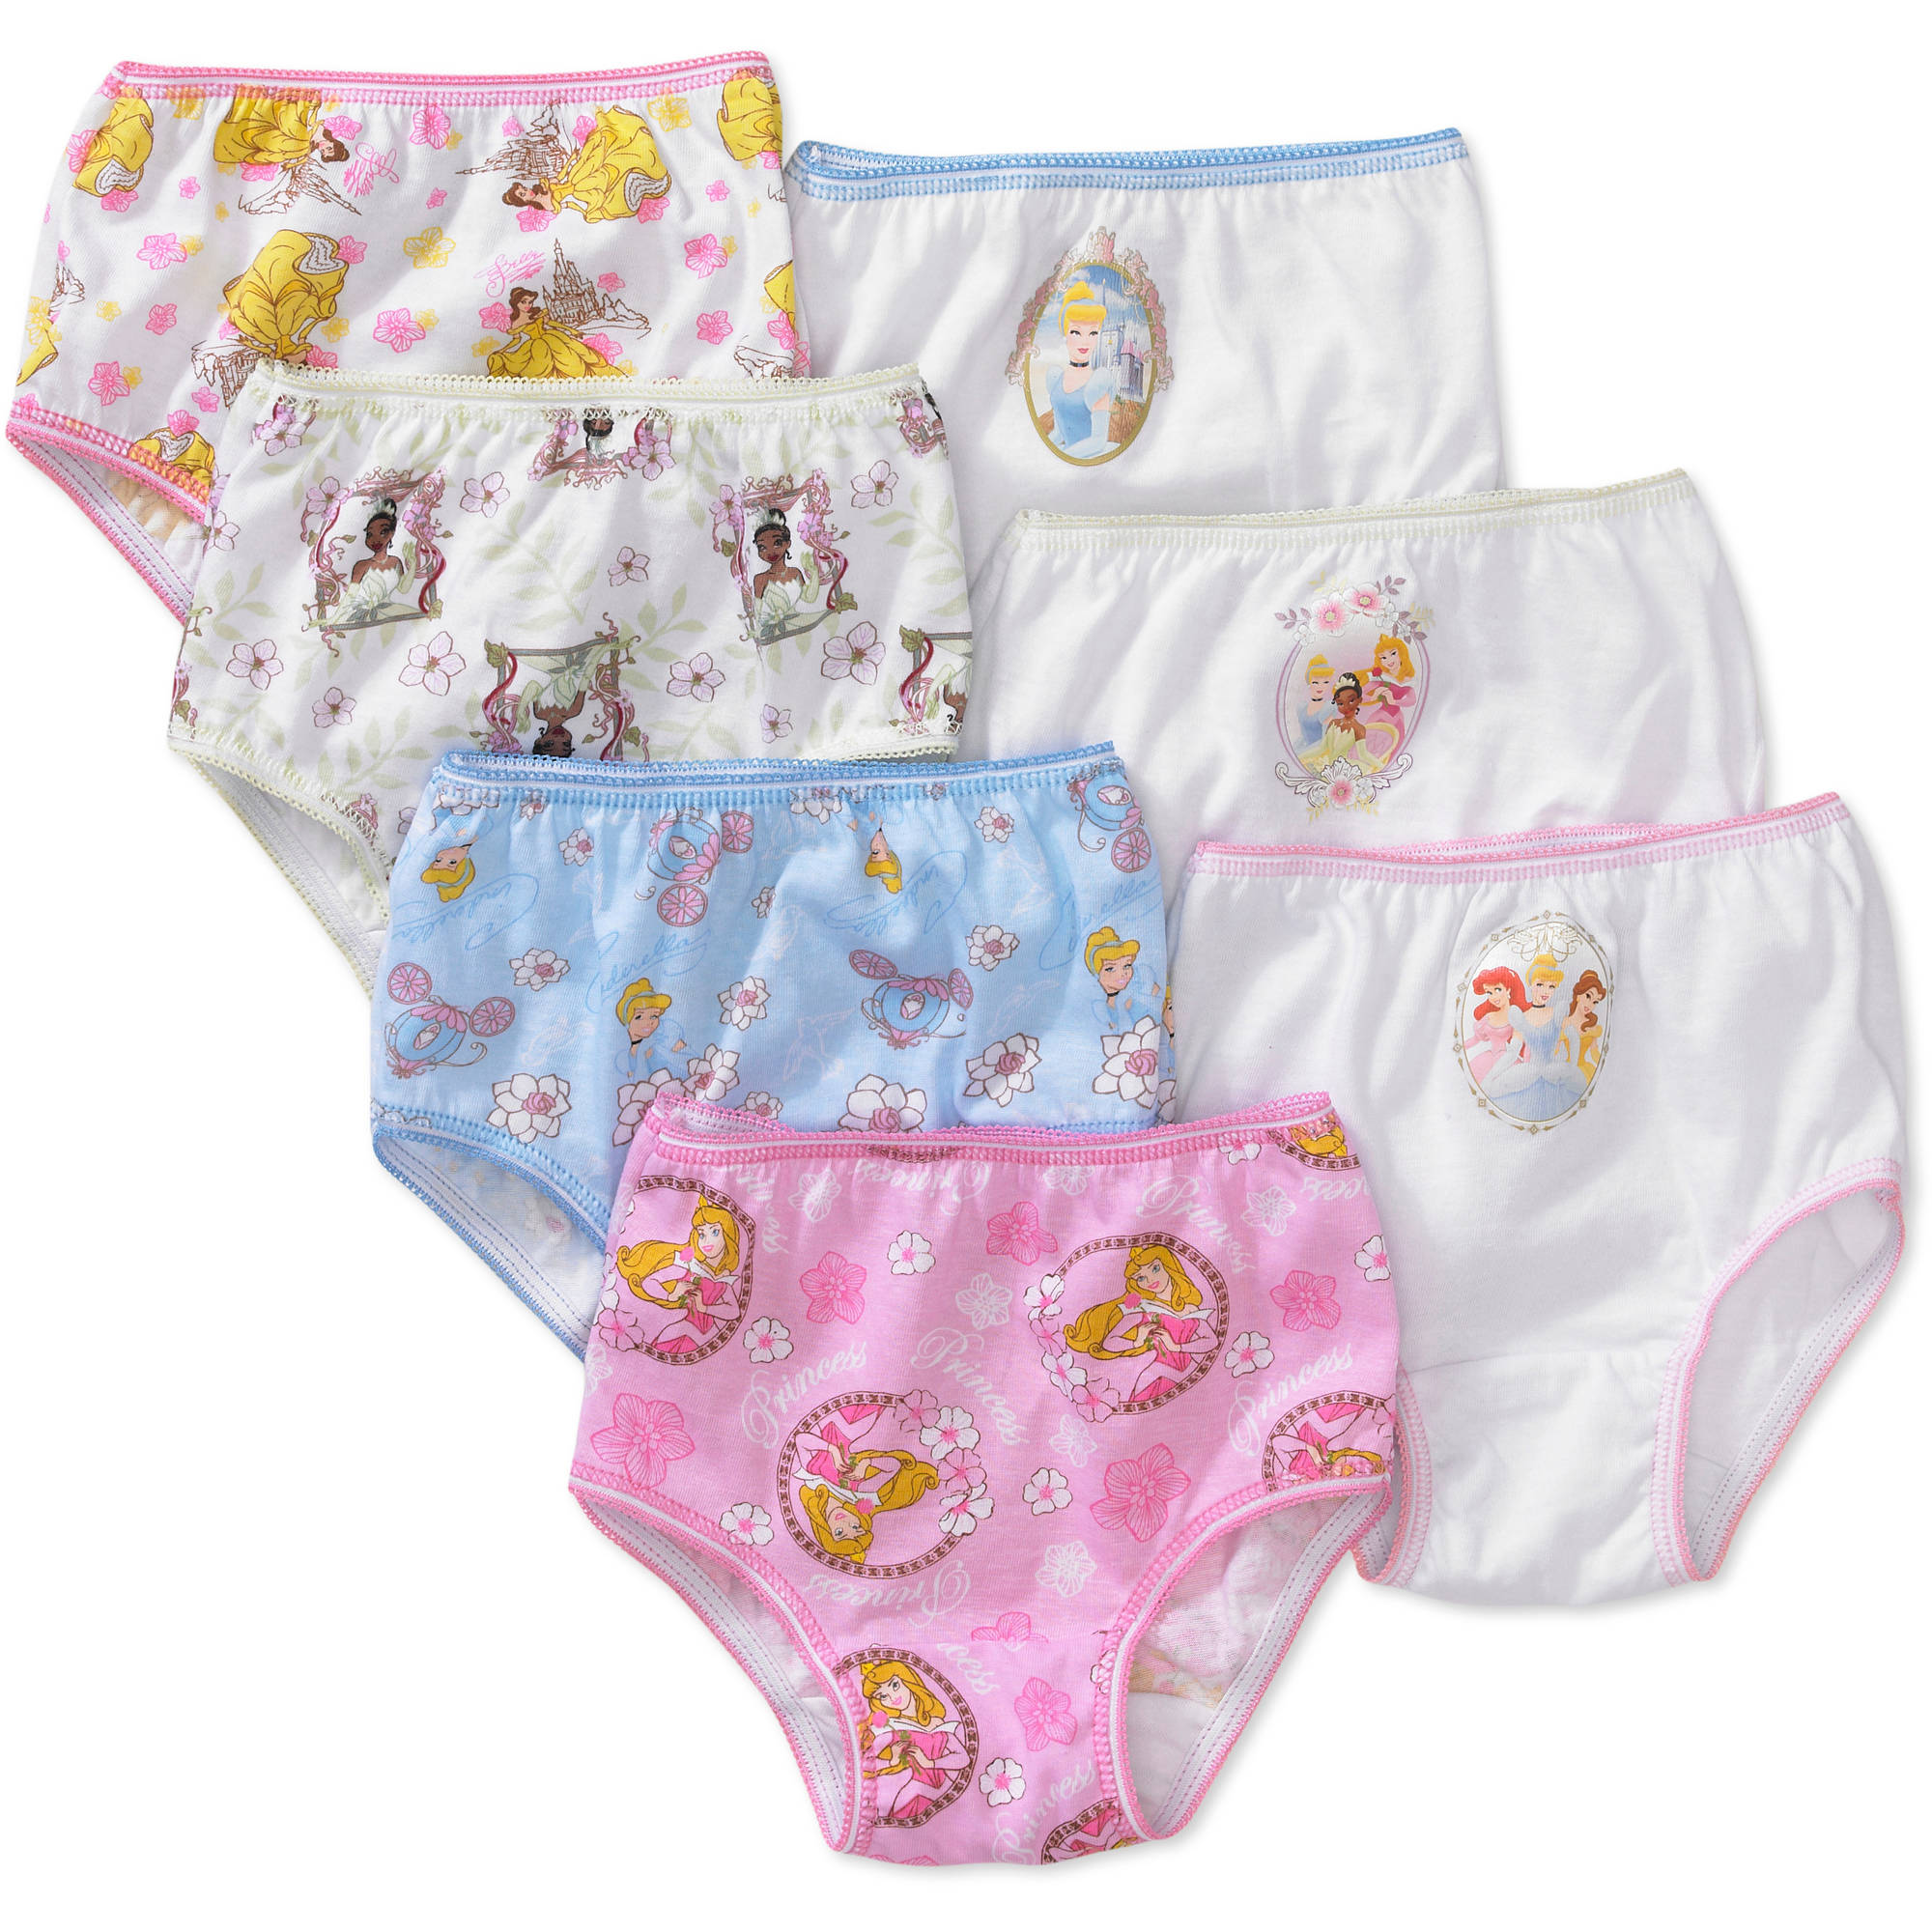 Disney - Toddler Girls' Princess Favorite Characters Underwear, 7-Pack